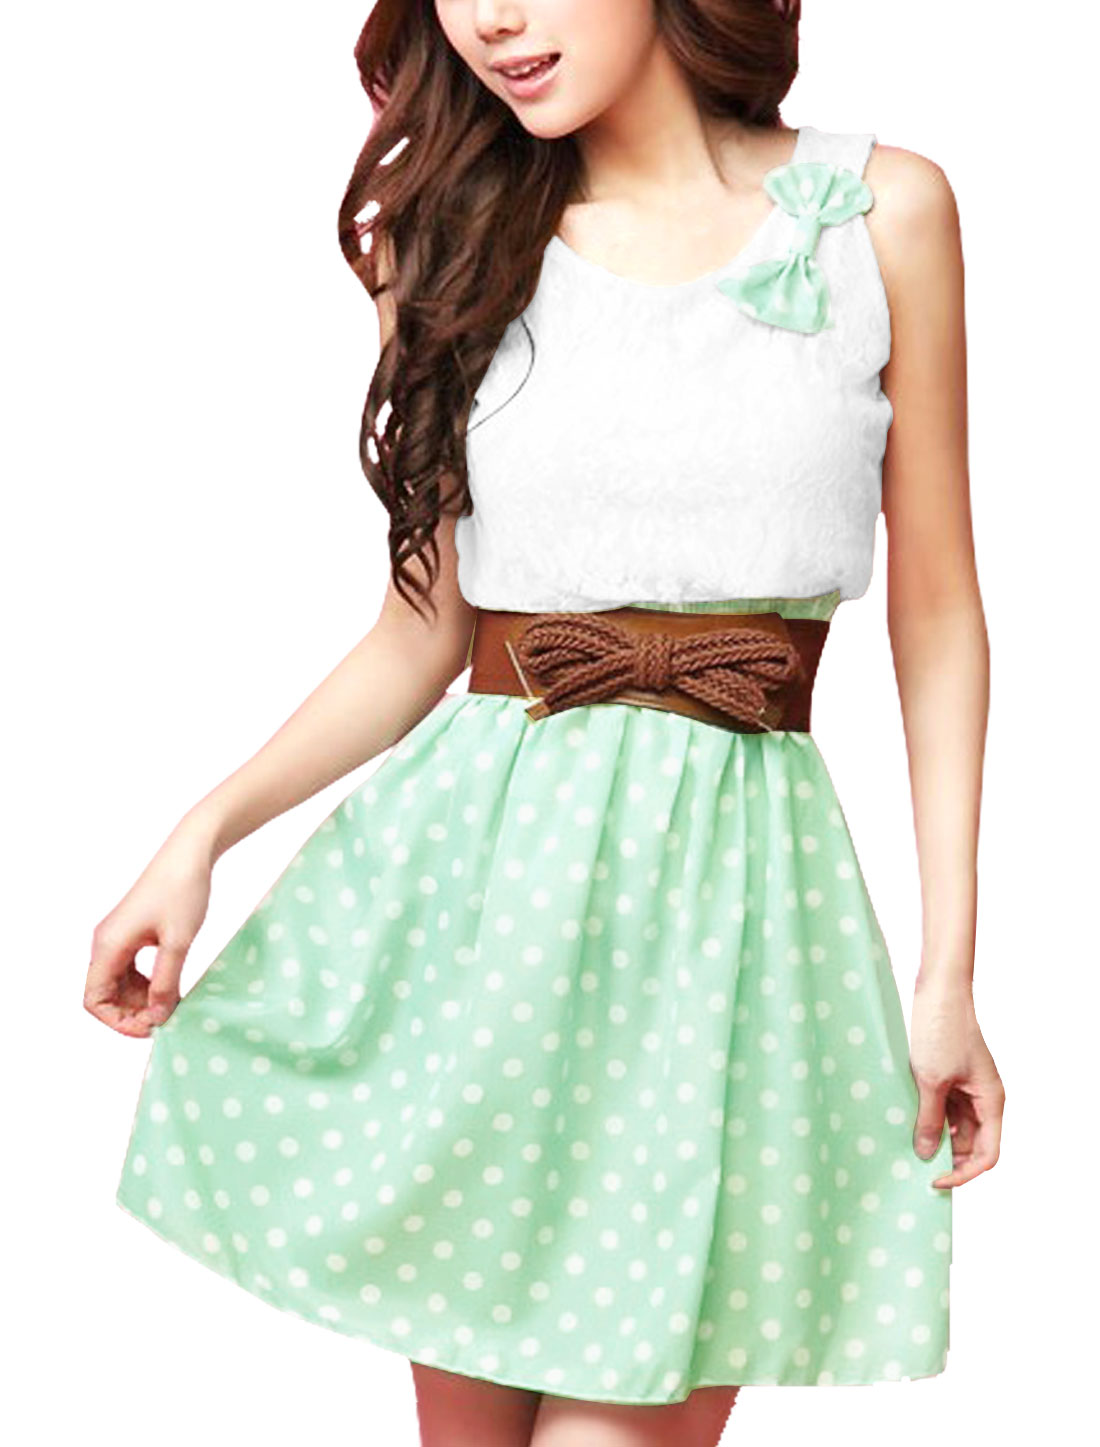 Women Bowknot Detail Scoop Neck Green Dots Print Mini Dress M